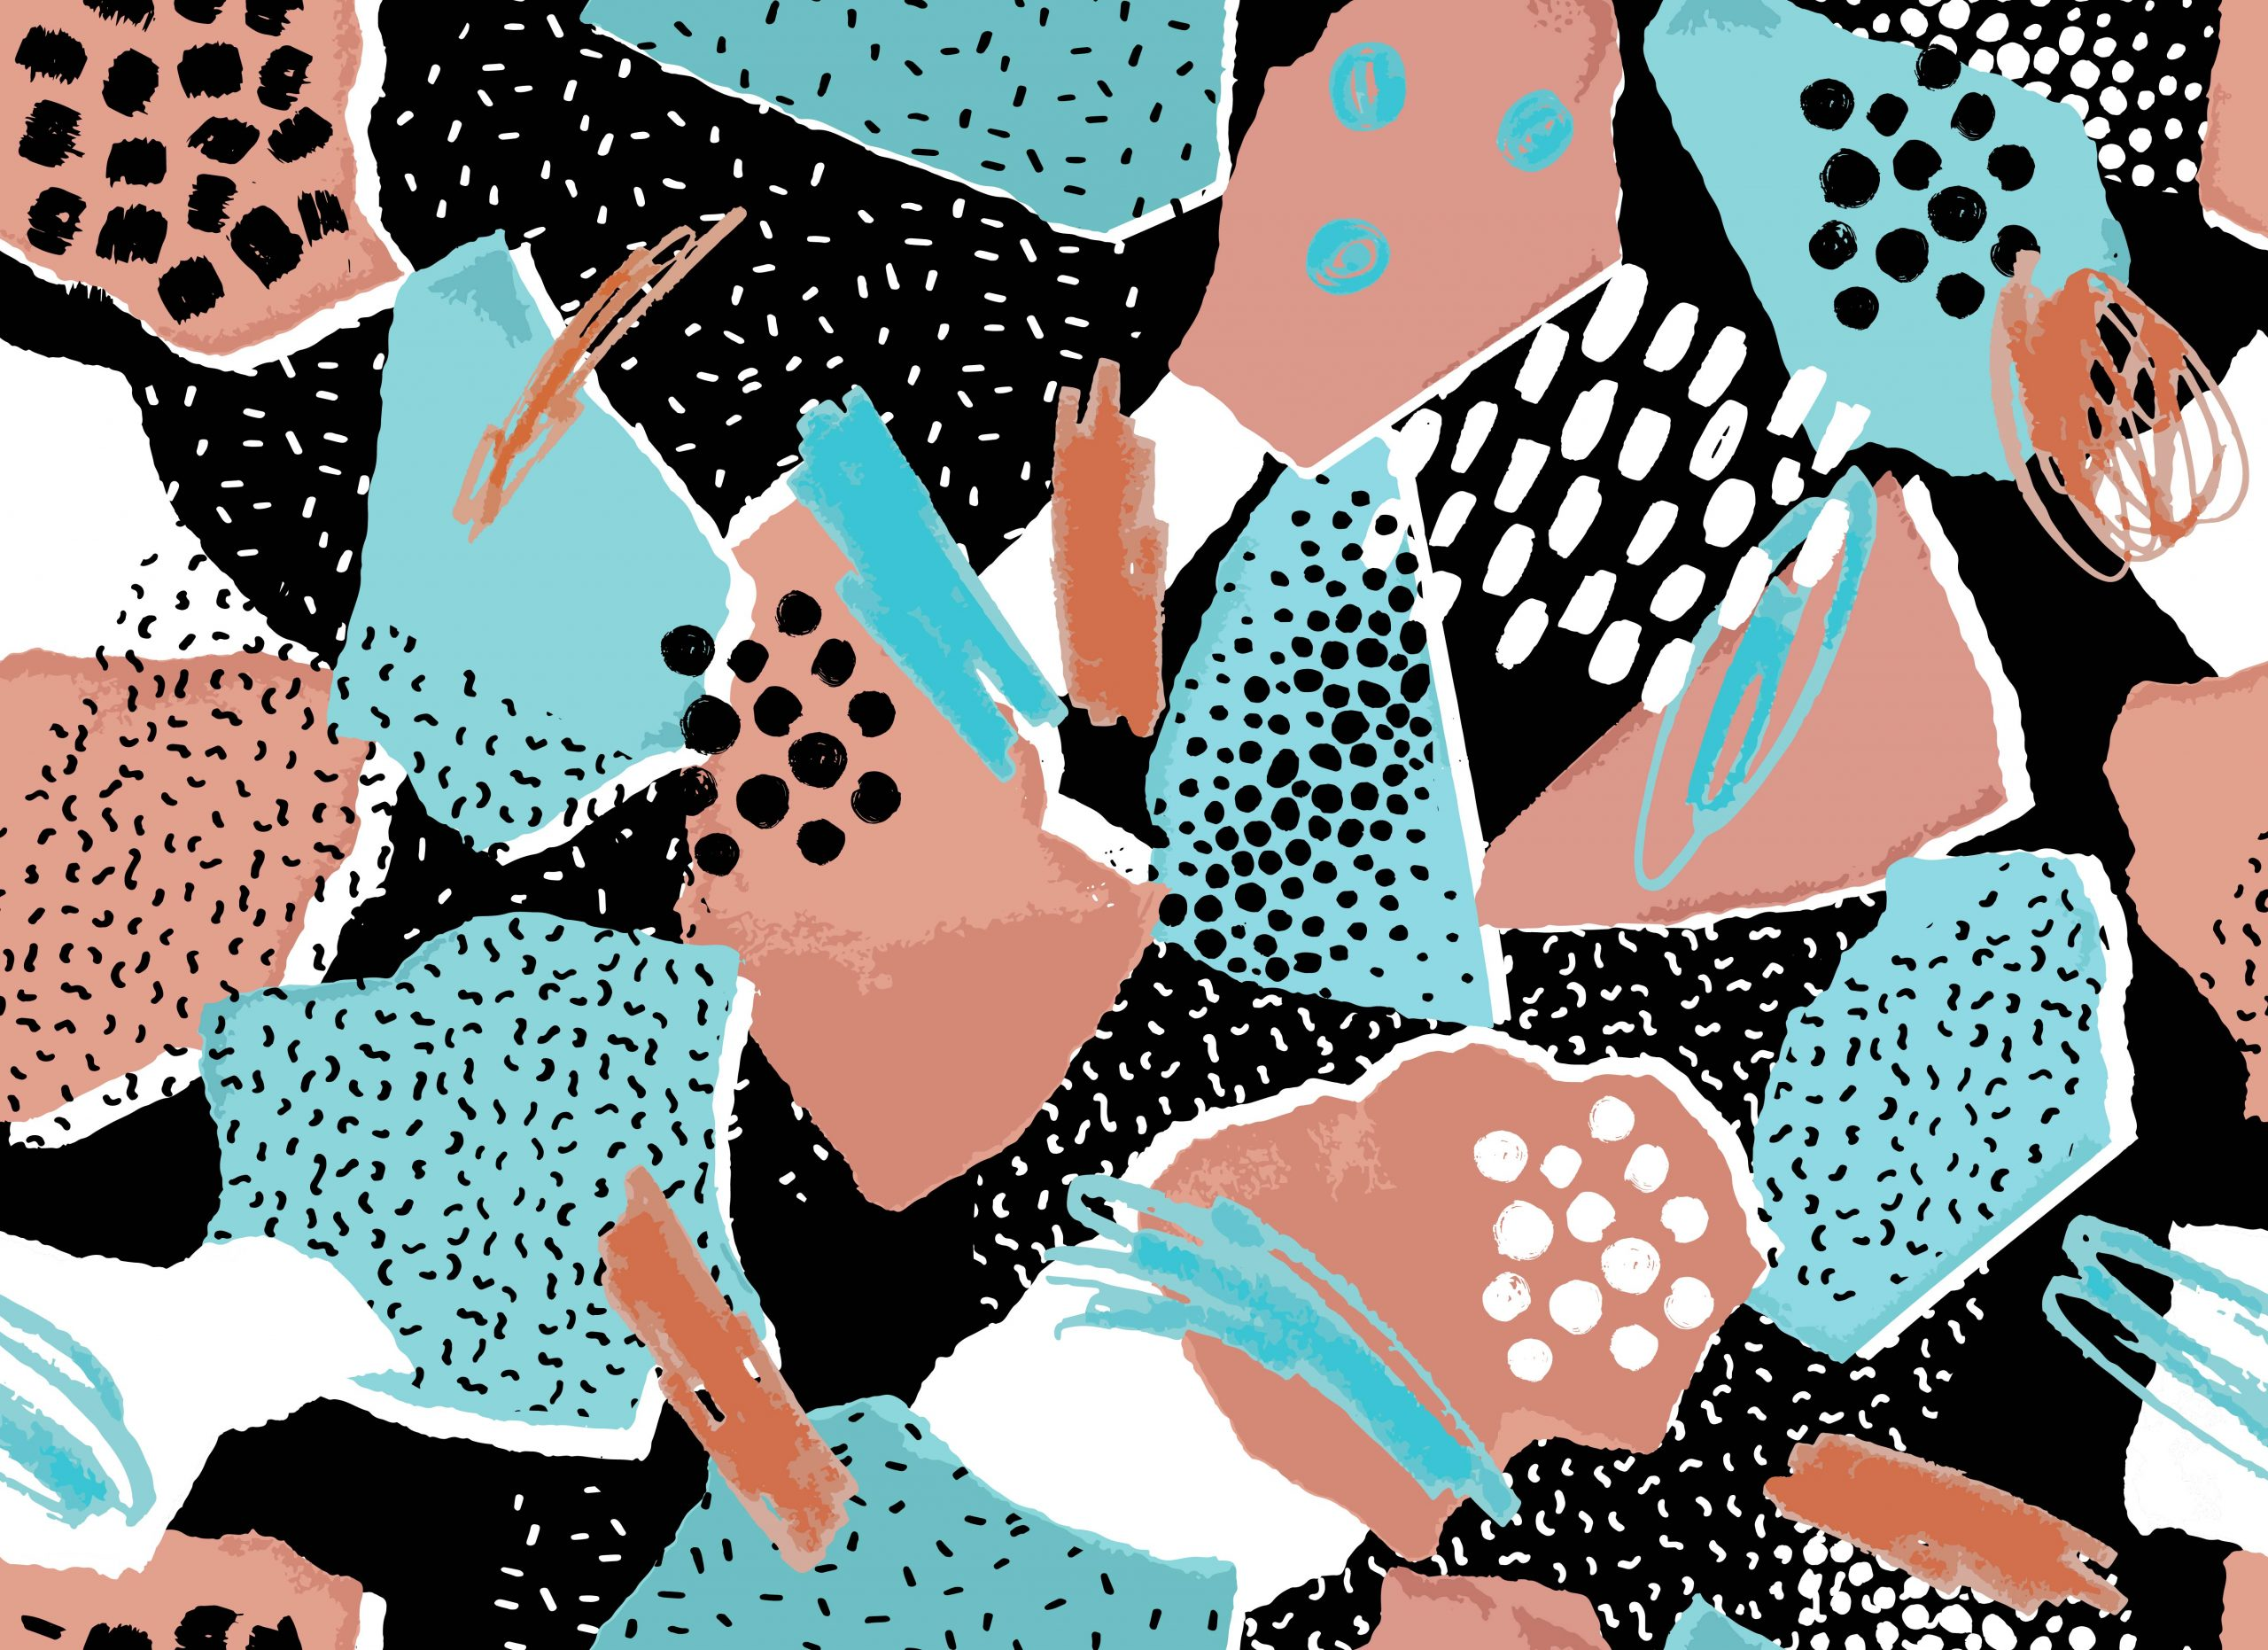 Abstract torn paper and geometric shapes collage of retro 80's fashion textures. Seamless pattern.